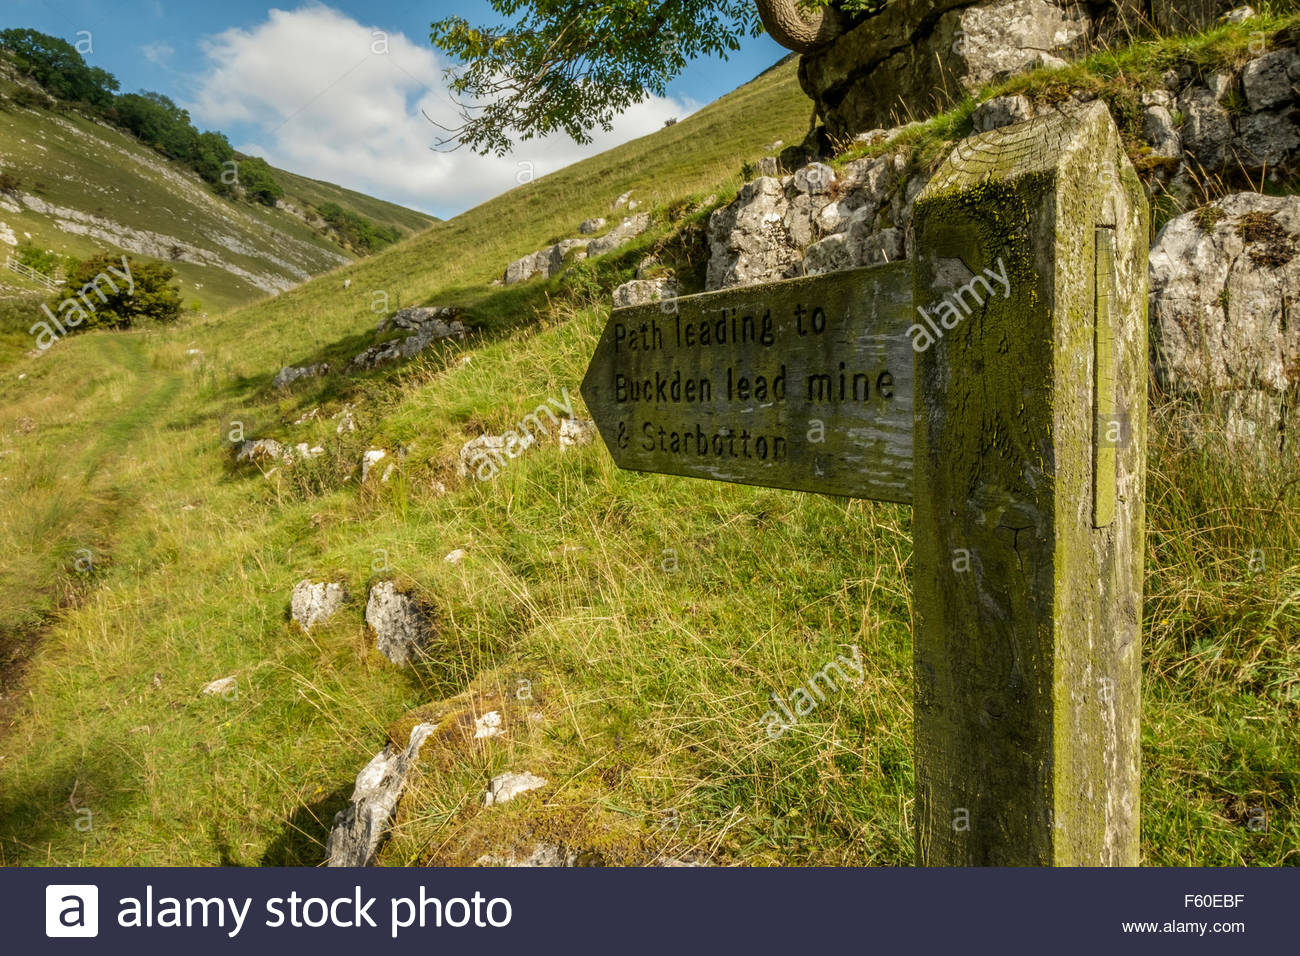 Wood signpost near Buckden, Wharfdale in the Yorkshire Dales, England indicating path to Buckden Lead Mine and Starbotton. - Stock Image